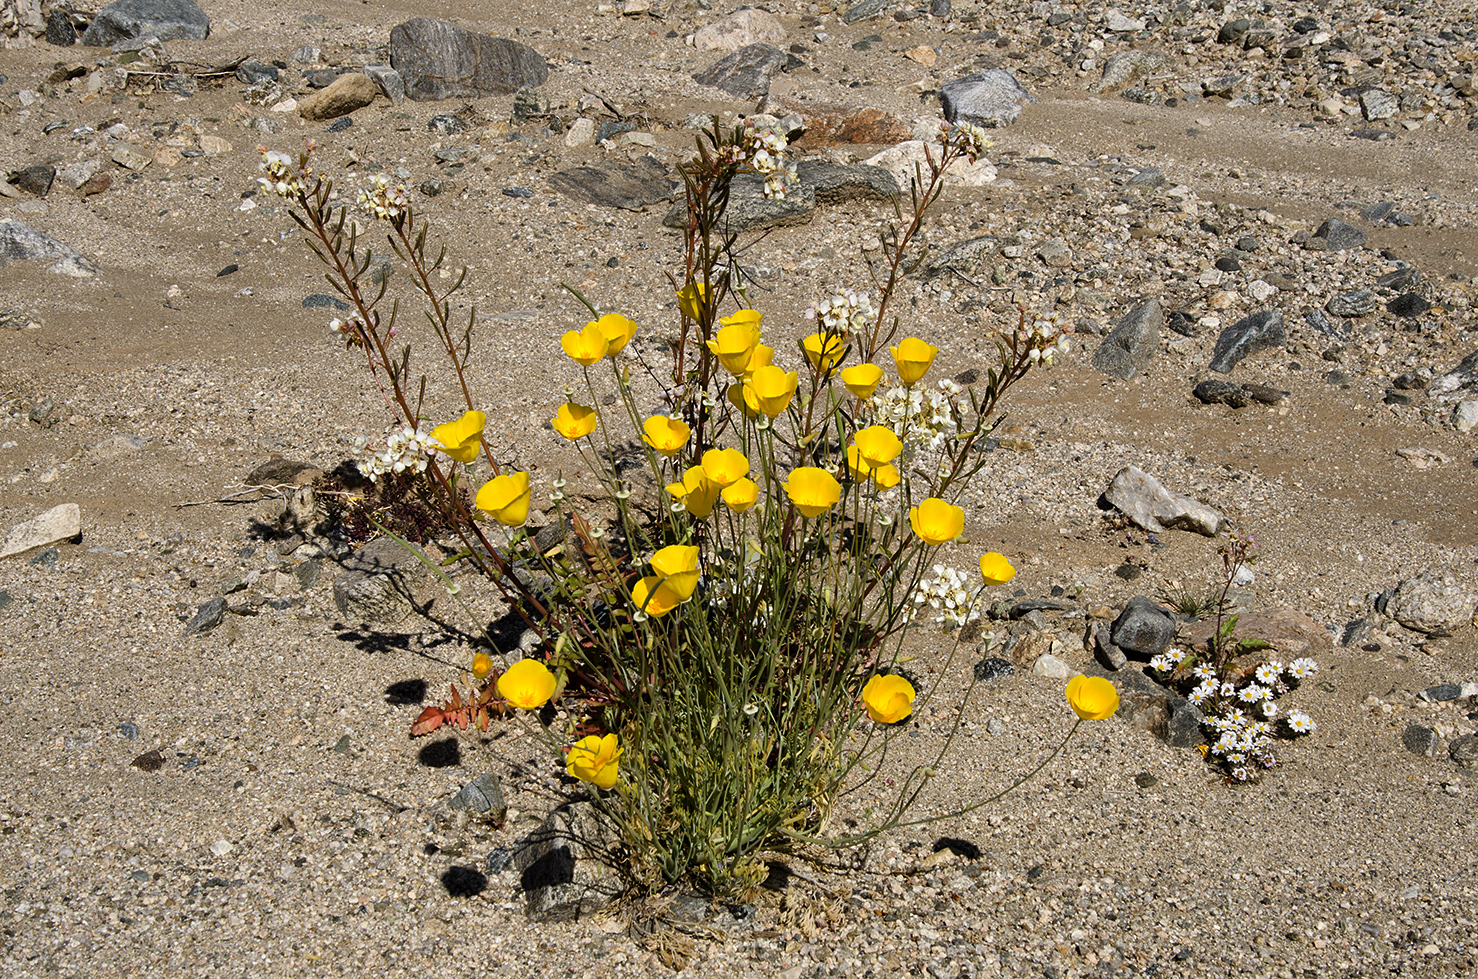 Joshua Tree National Park Wildflowers 53.jpg